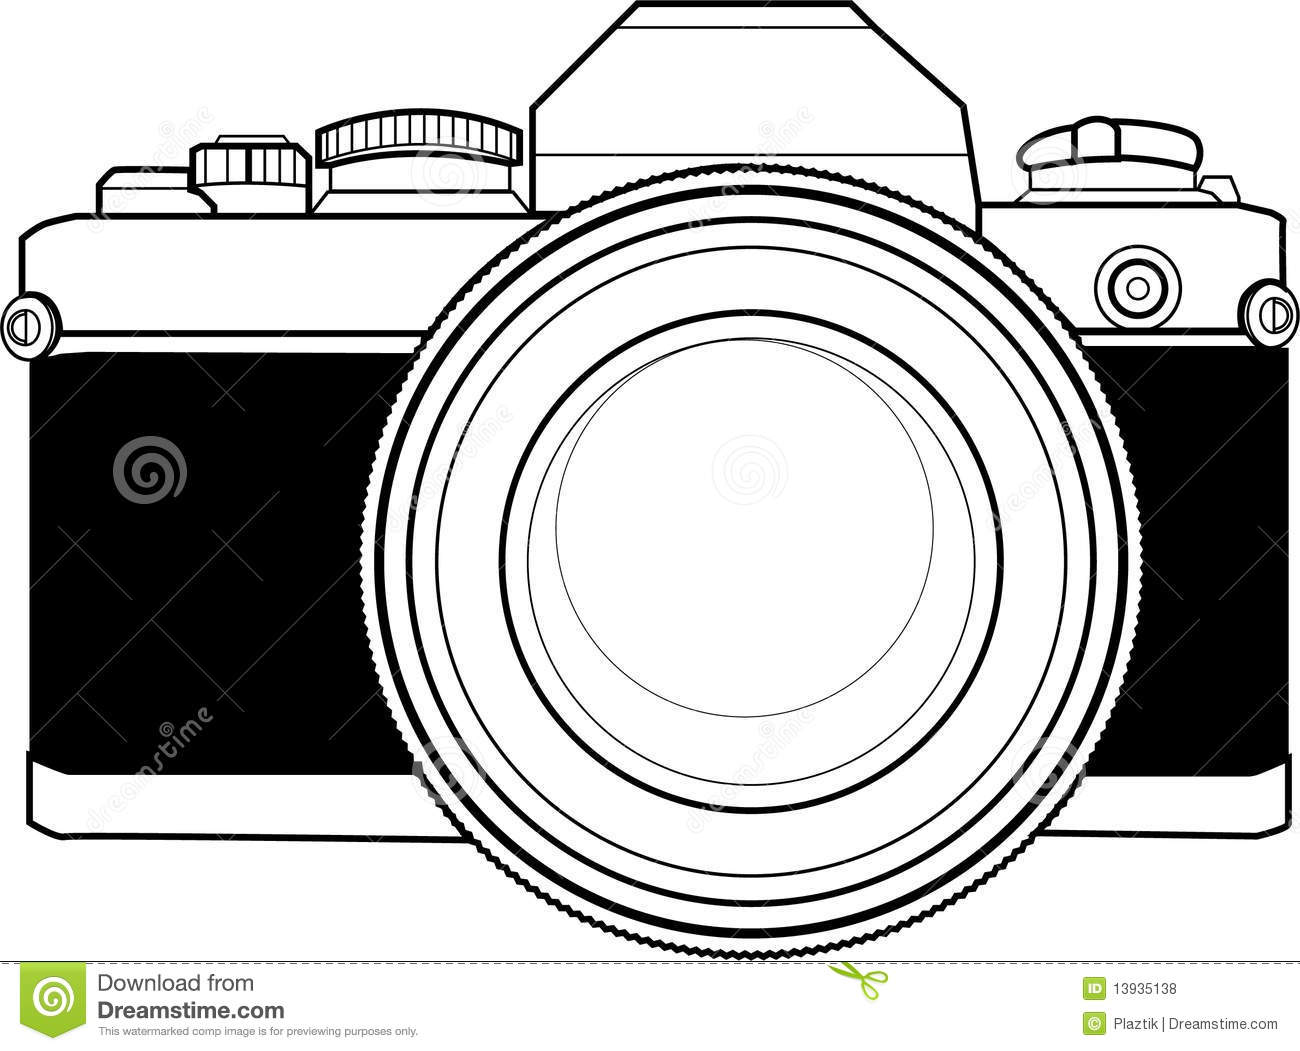 Photography clipart vintage Fashioned clip for Old clip